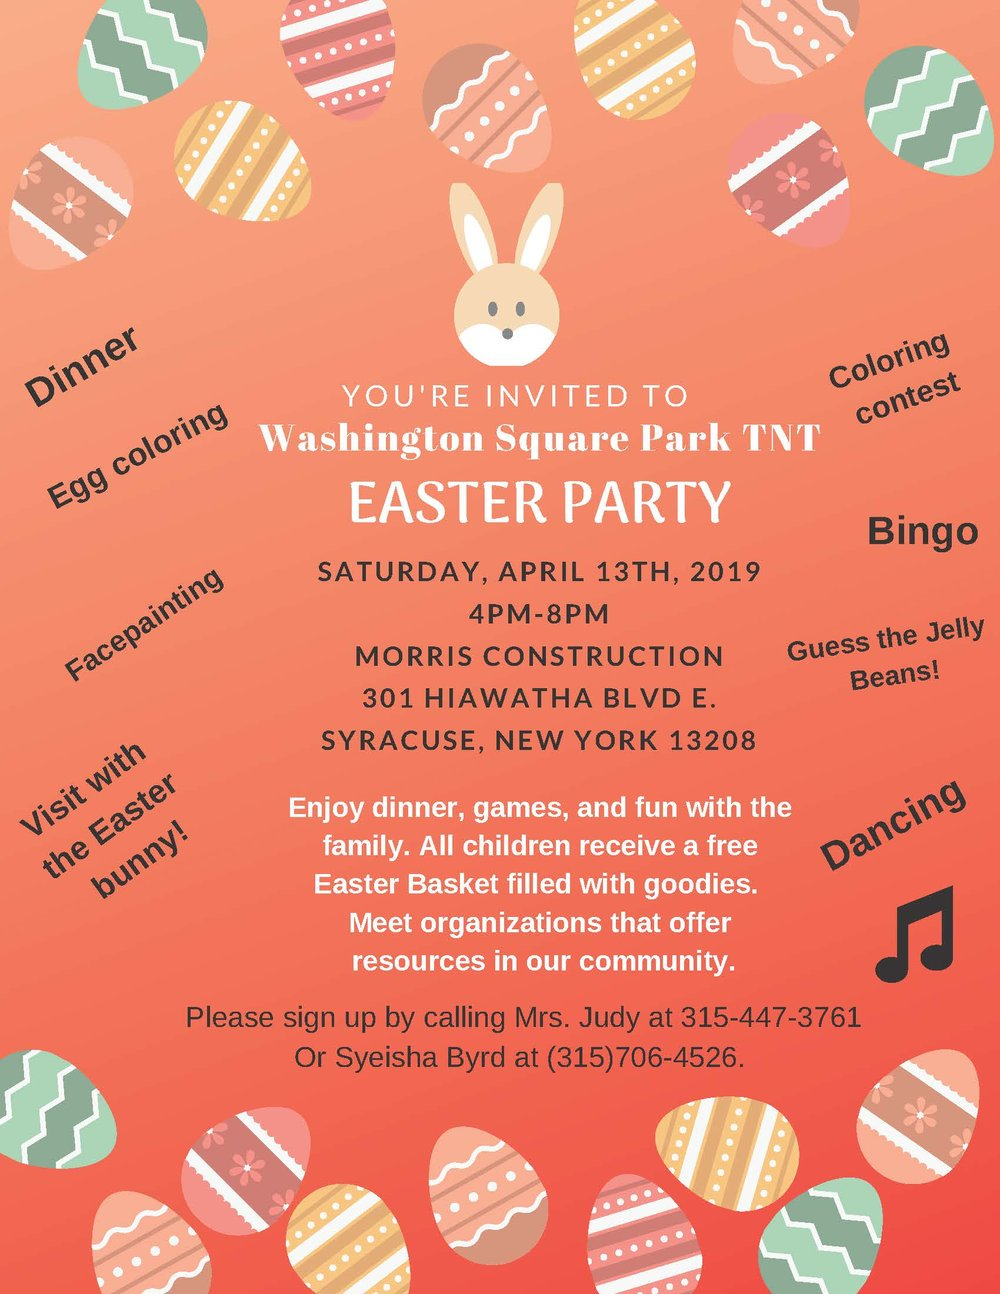 Easterparty flyer.jpg